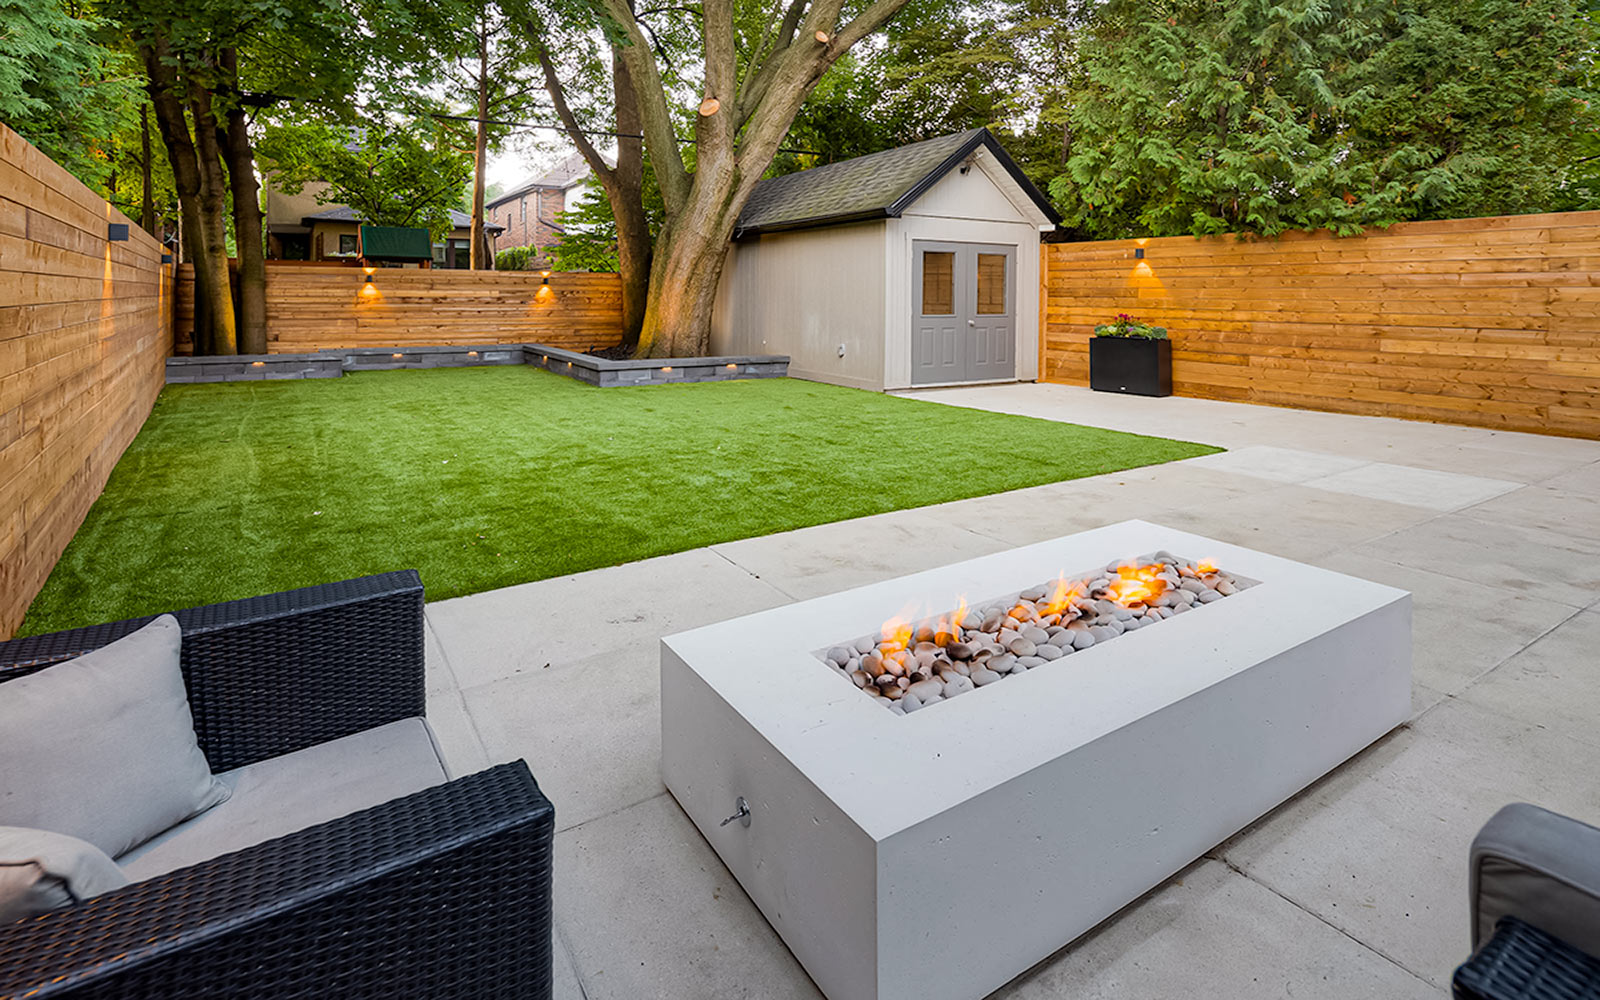 Complete Toronto Landscaping Project; Featuring Small Retaining Wall, Composite Deck Build with Stainless Steel Glass Railings, Interlocking & Outdoor Fireplace by Toronto Landscaping Company.